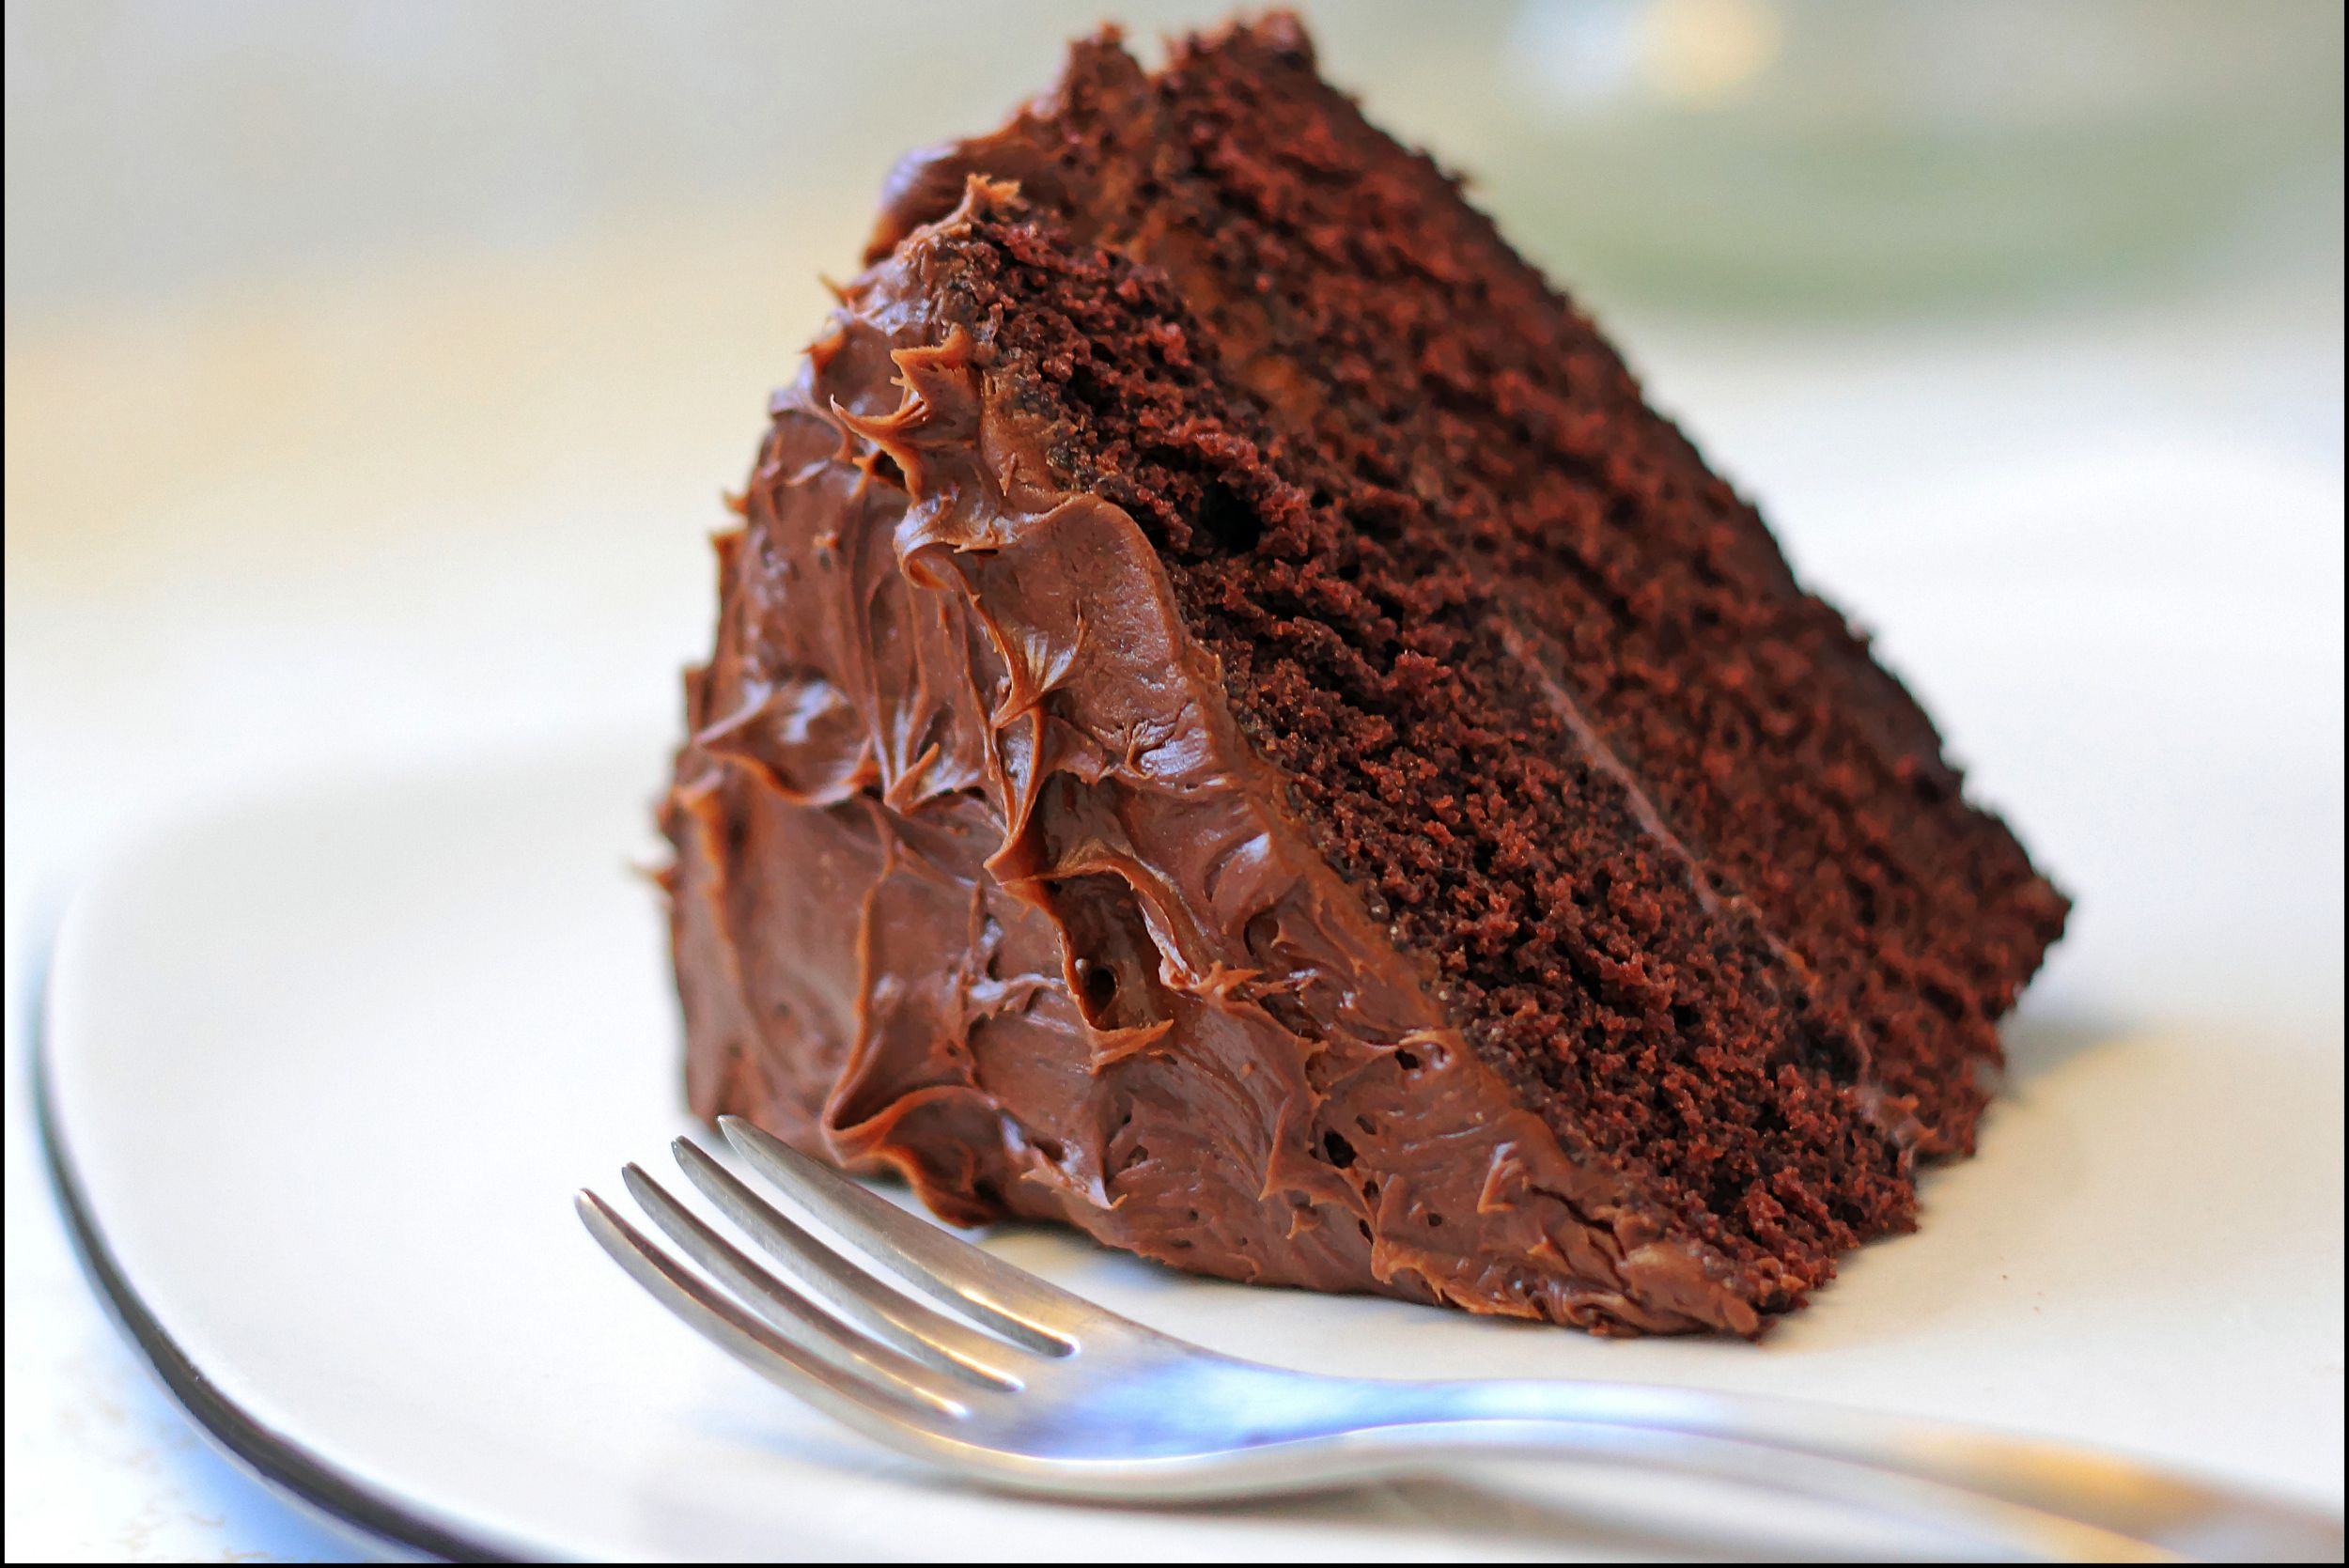 Cake Recipes In Pictures: Classic And Easy Chocolate Cake Recipe